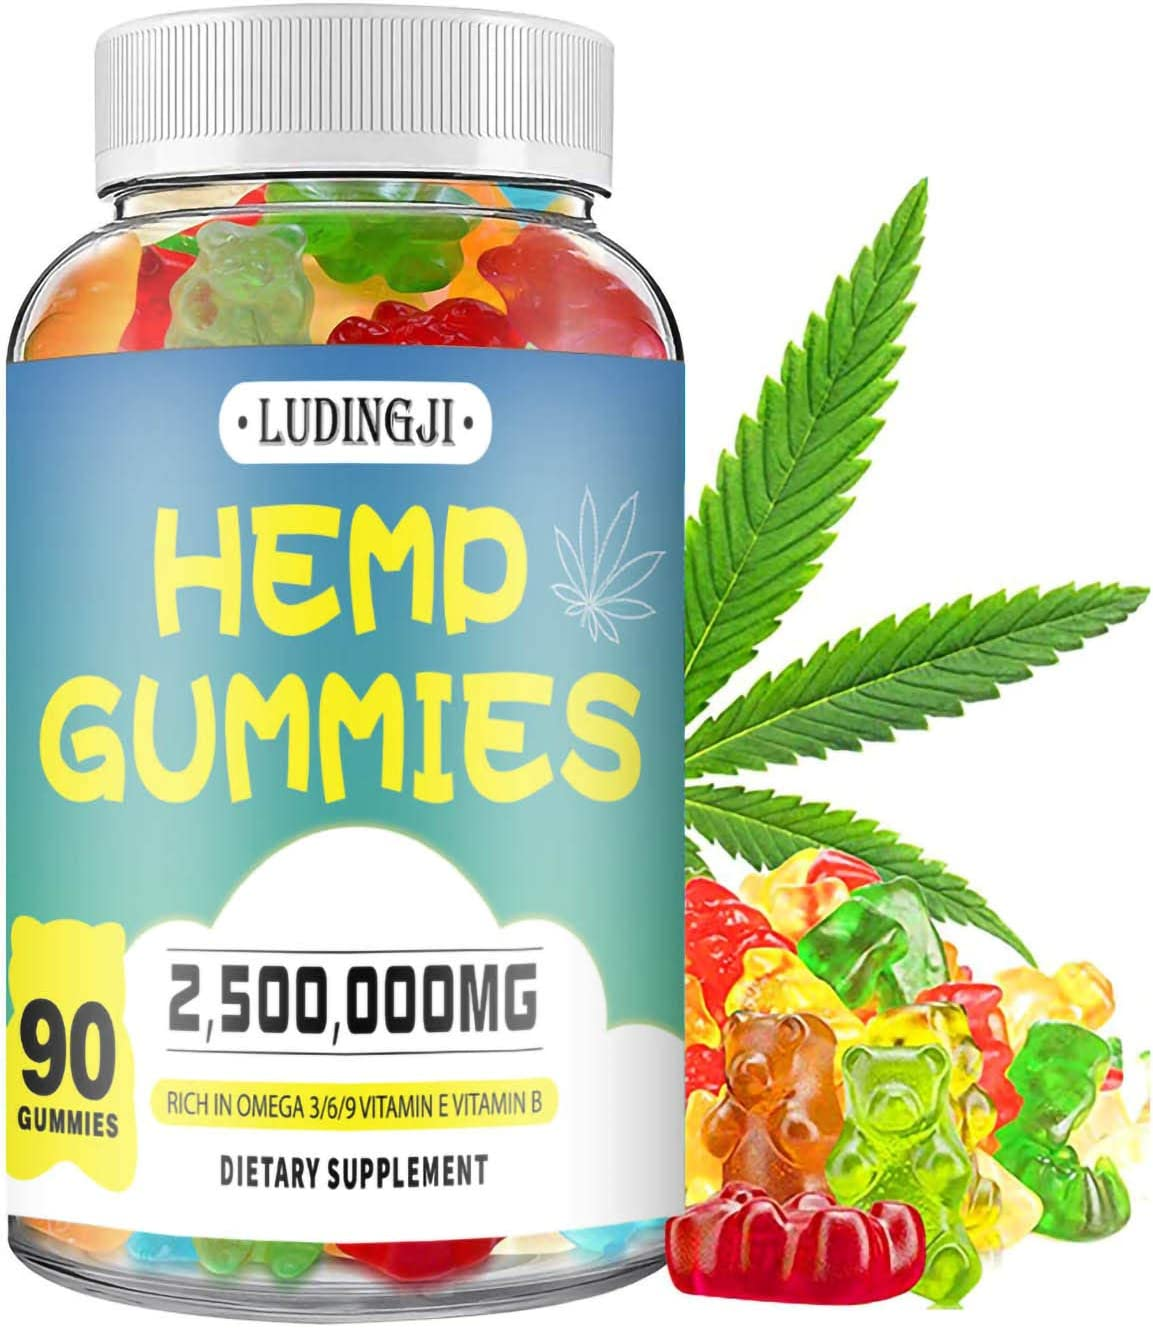 Hemp Gummies Premium Extract 2,500,000mg Natural Hemp Candy Supplements Hemp Gummies for Pain and Anxiety Promotes Sleep and Calm Mood